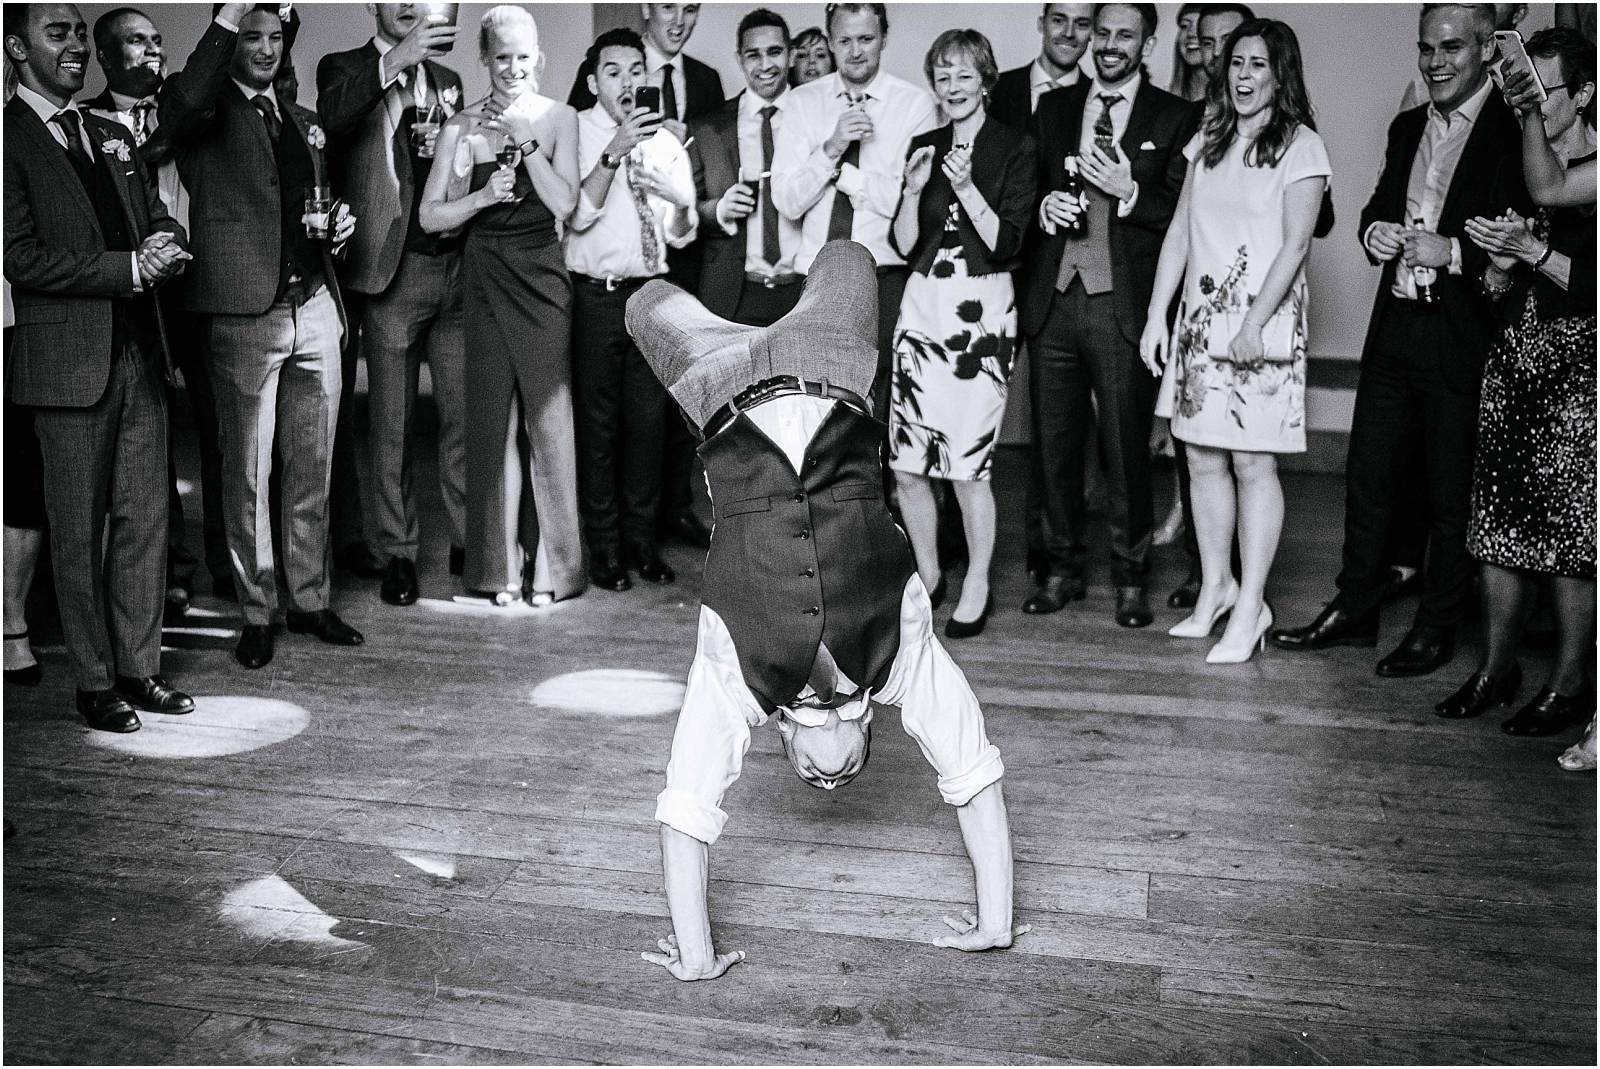 groom doing back flip